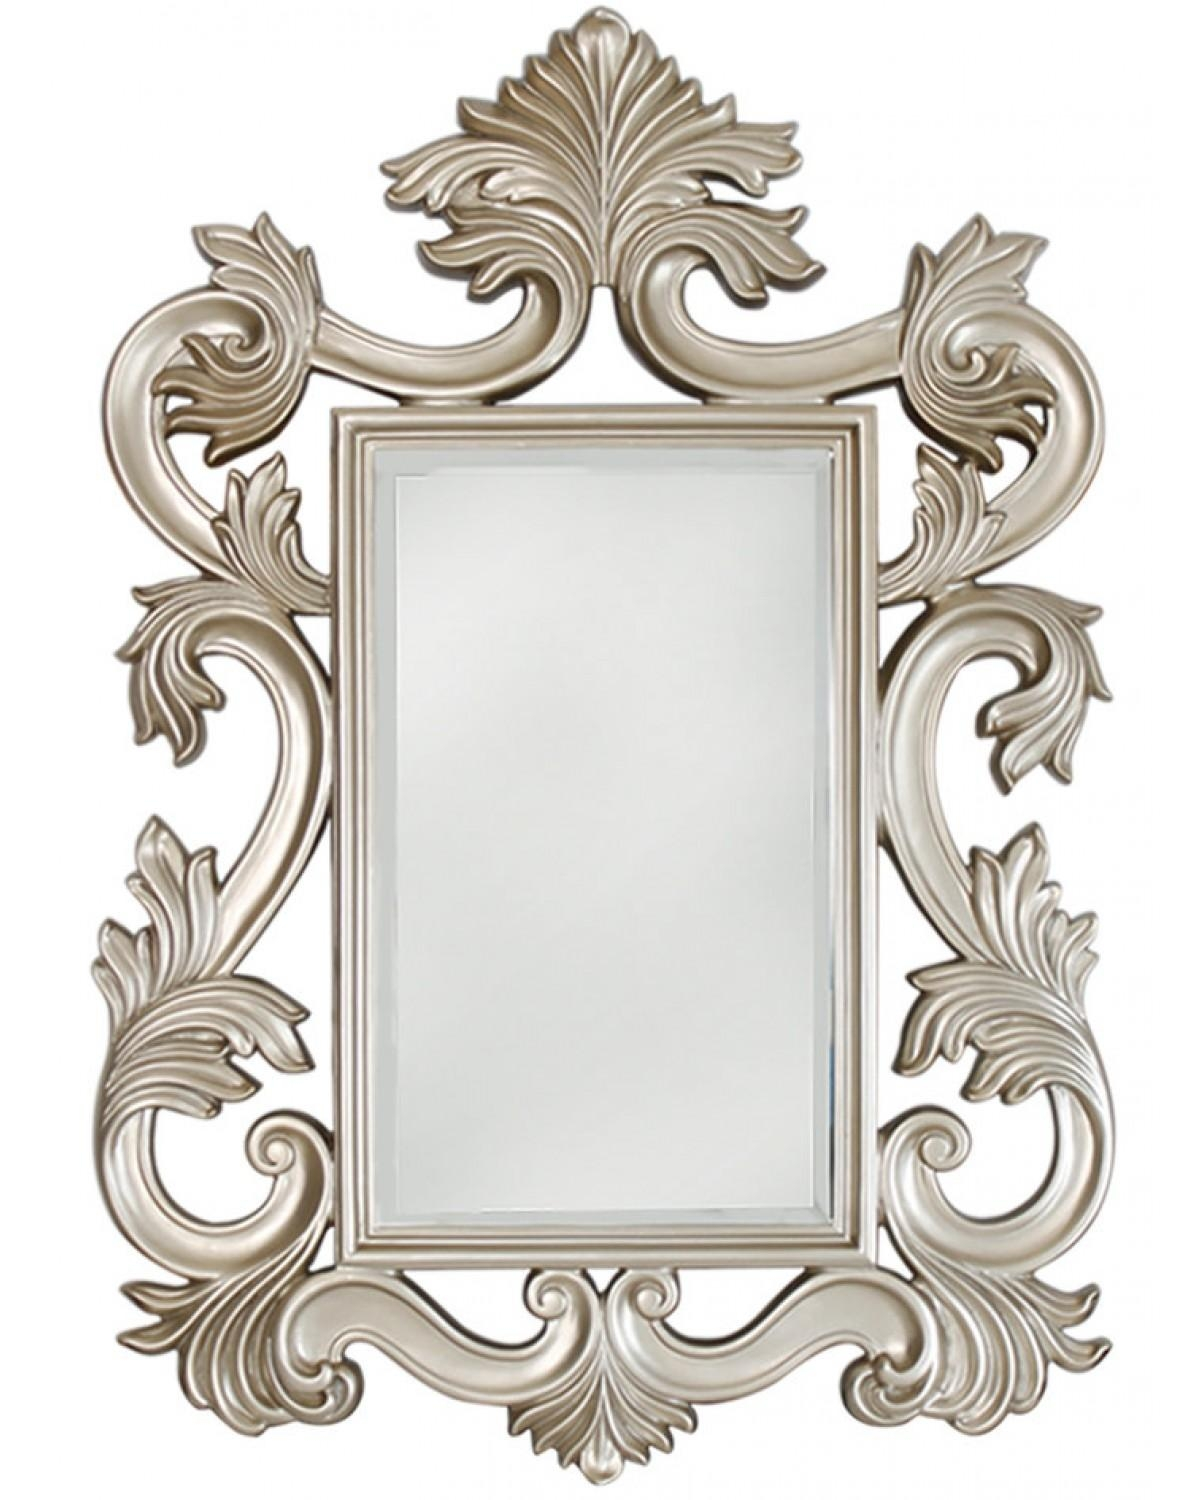 Gold Extra Large Paris Baroque Mirror For Large Baroque Mirror (Image 10 of 20)